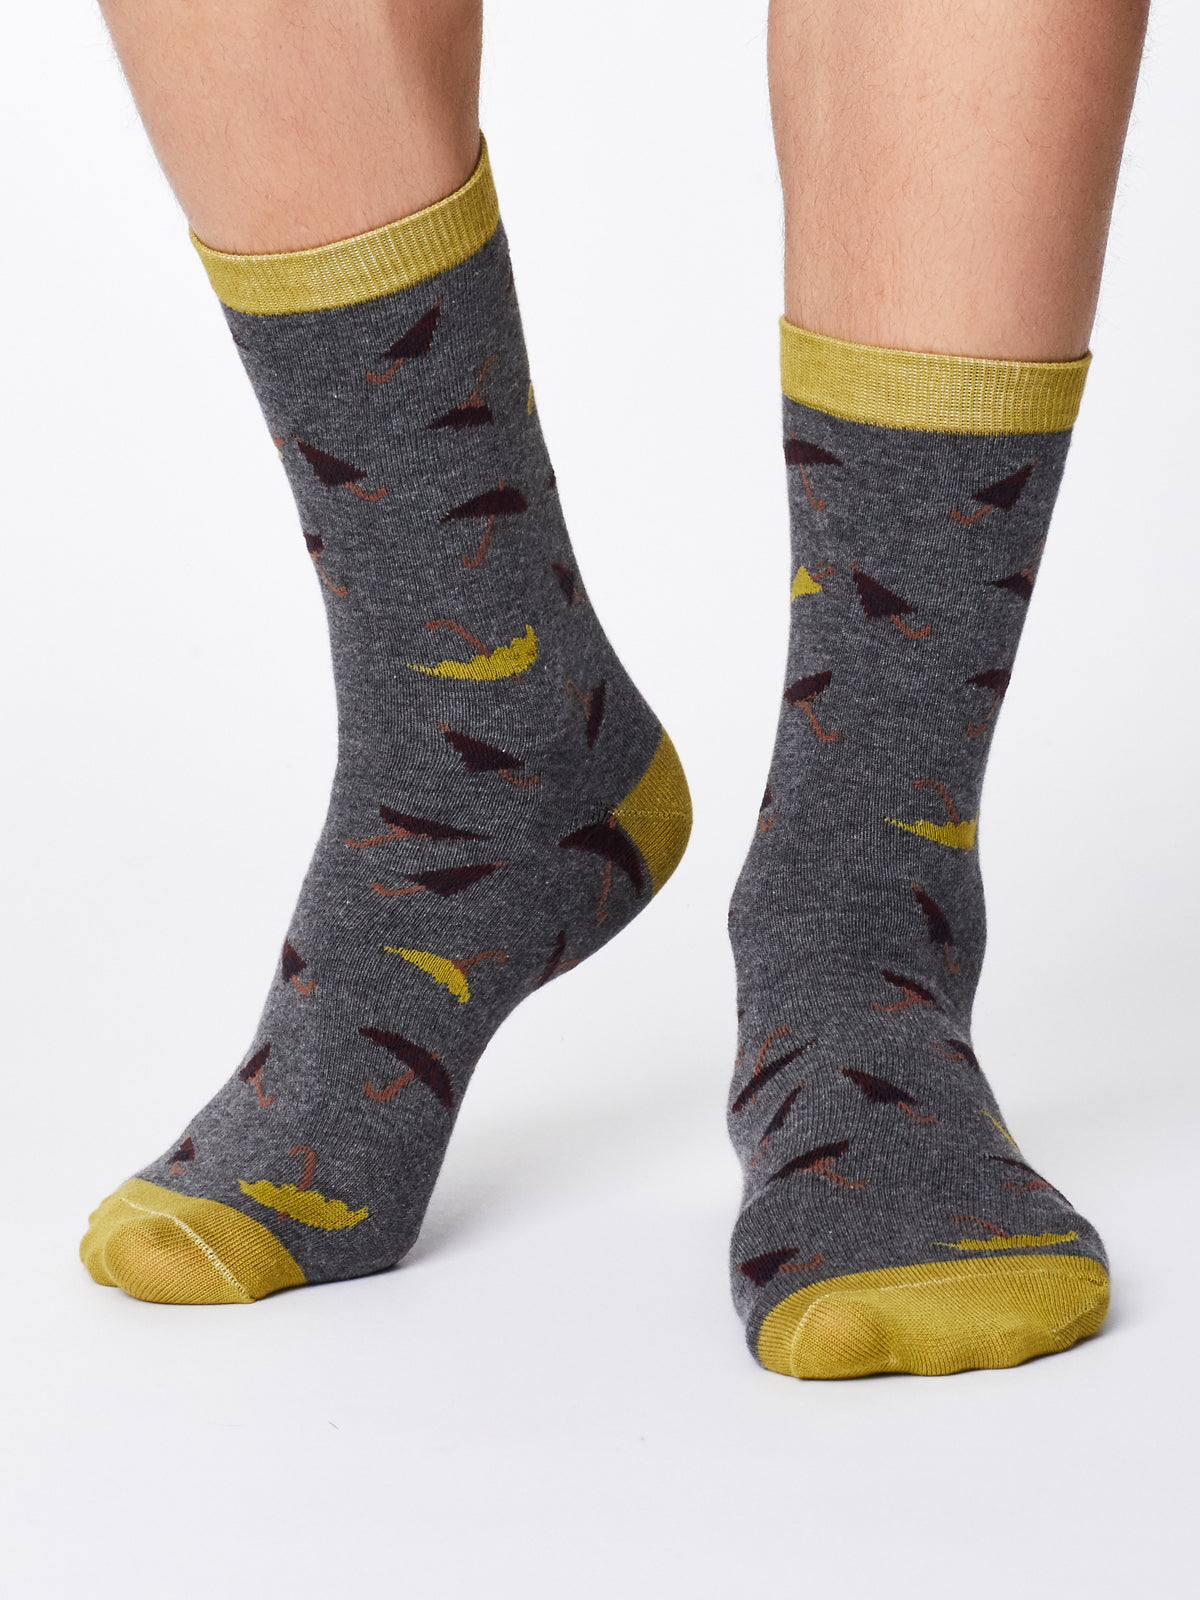 Men's Organic Socks - Gentleman